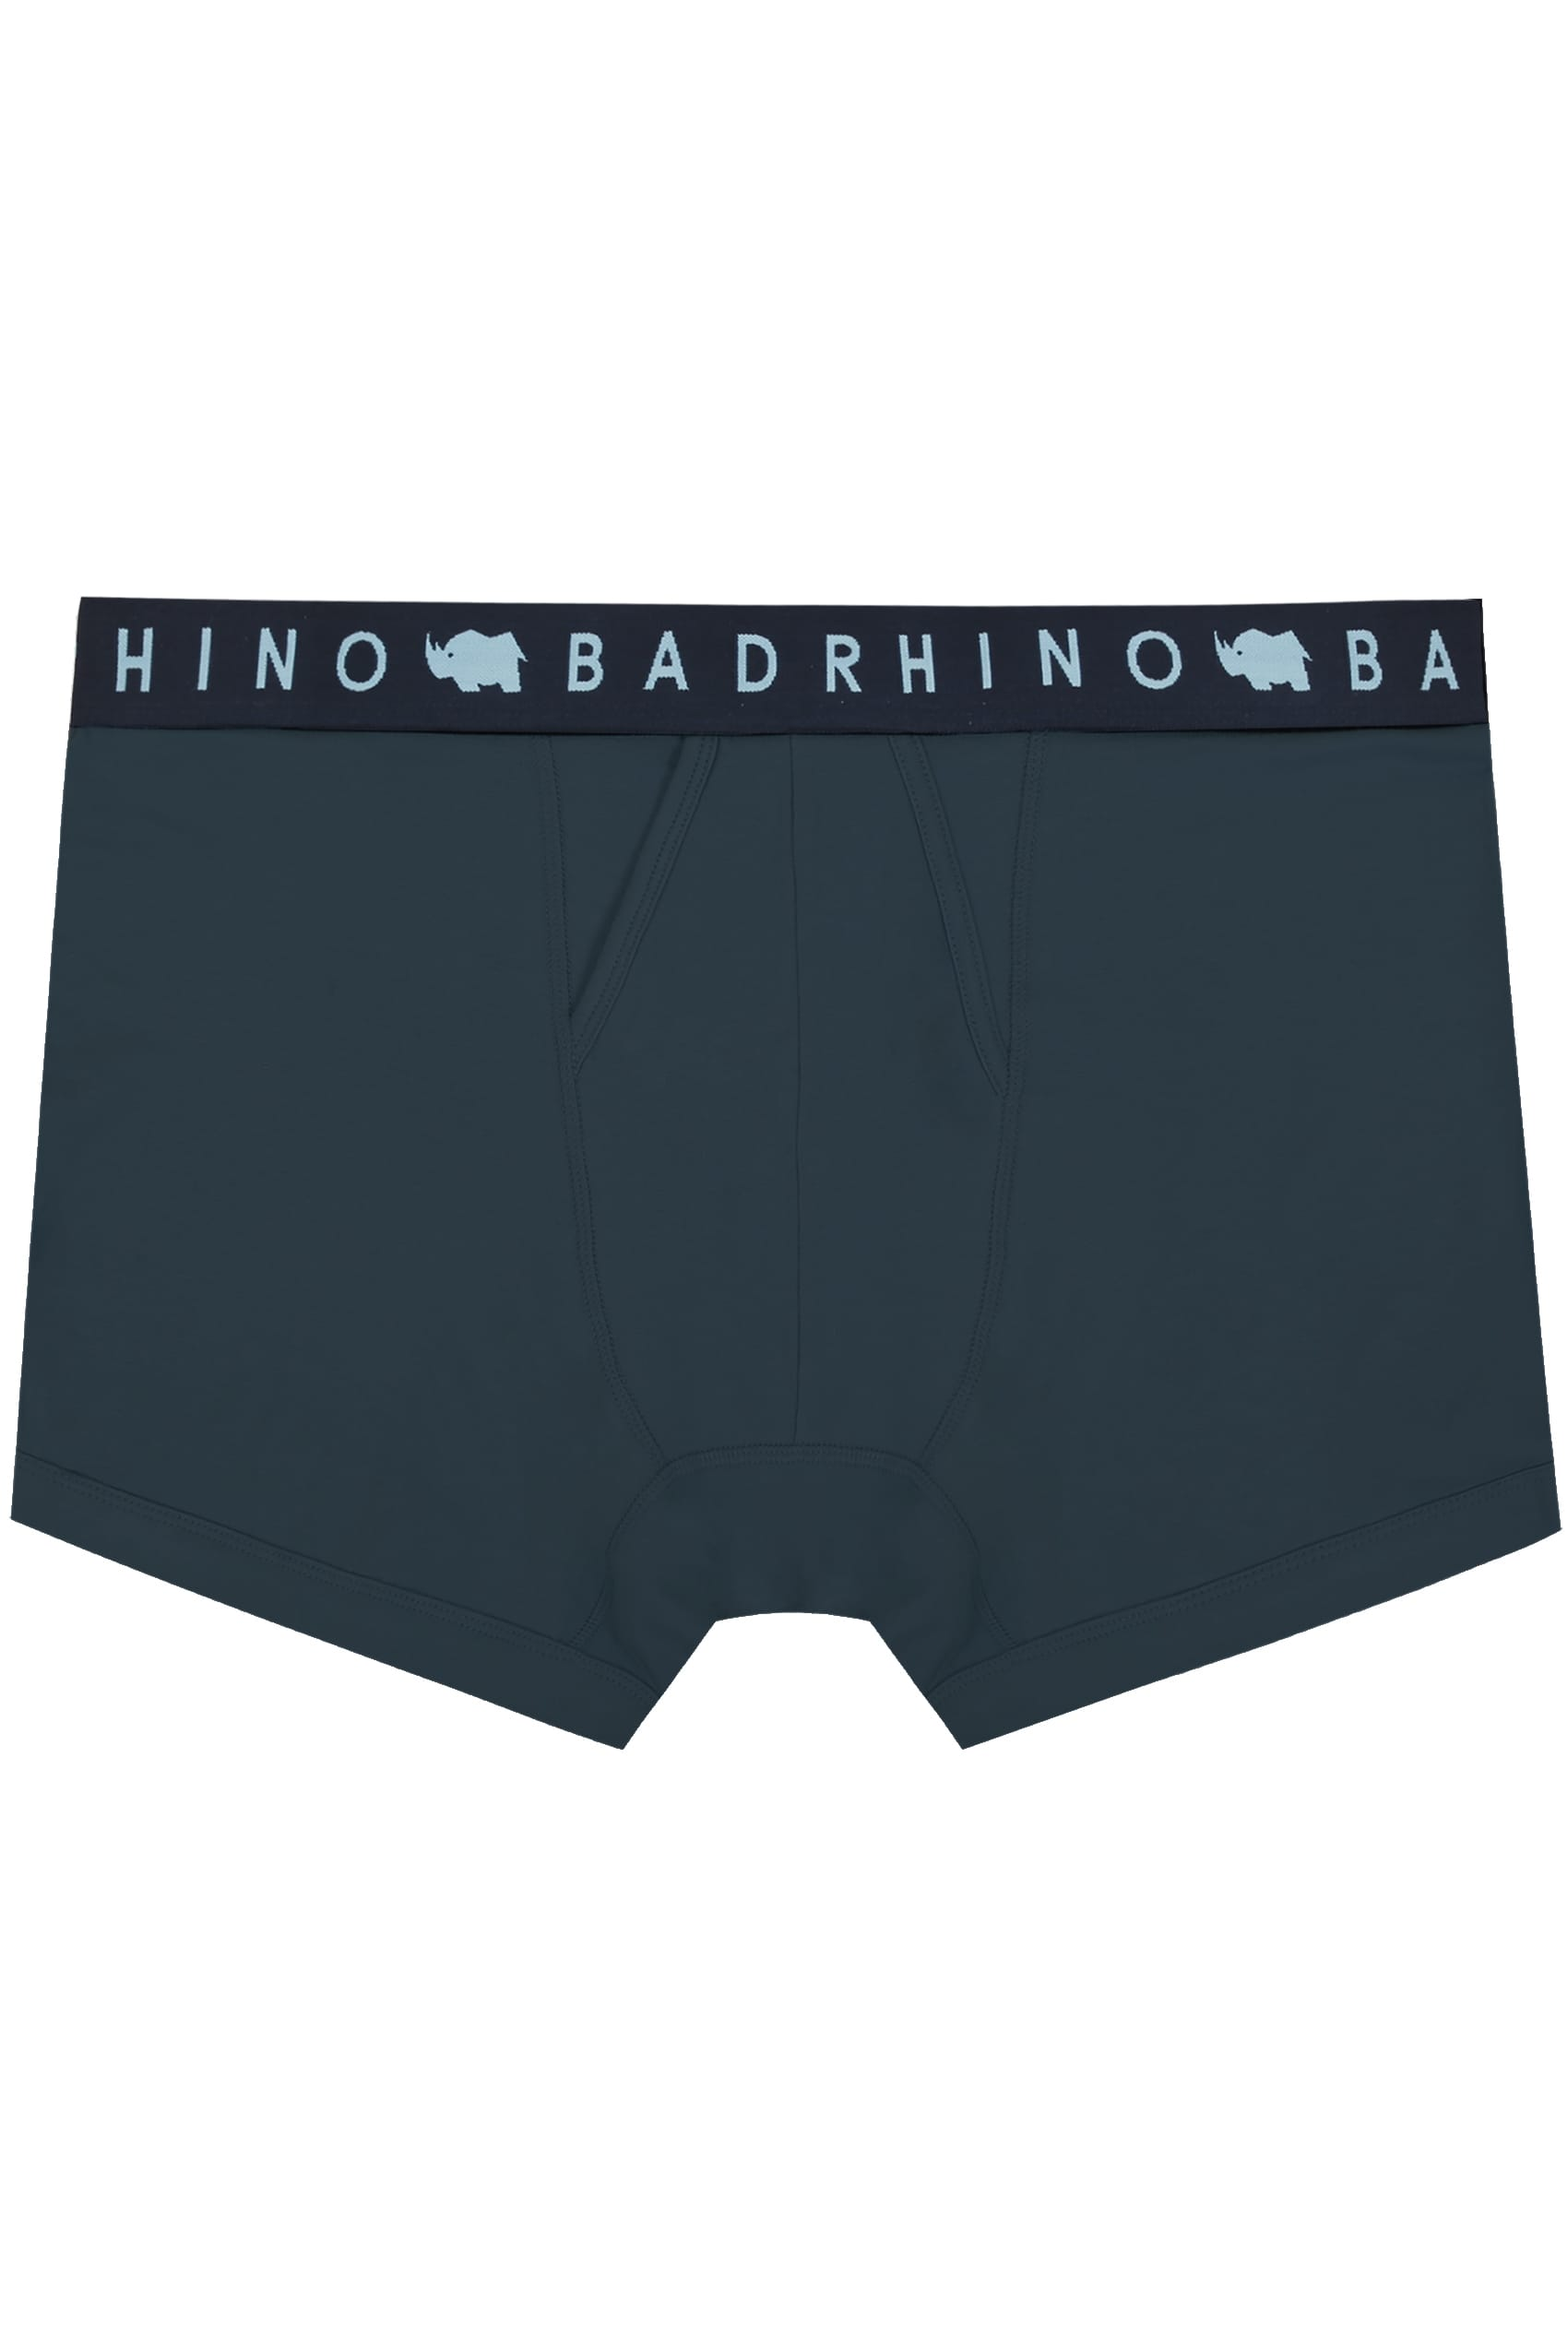 BadRhino Navy Elasticated A Front Boxers